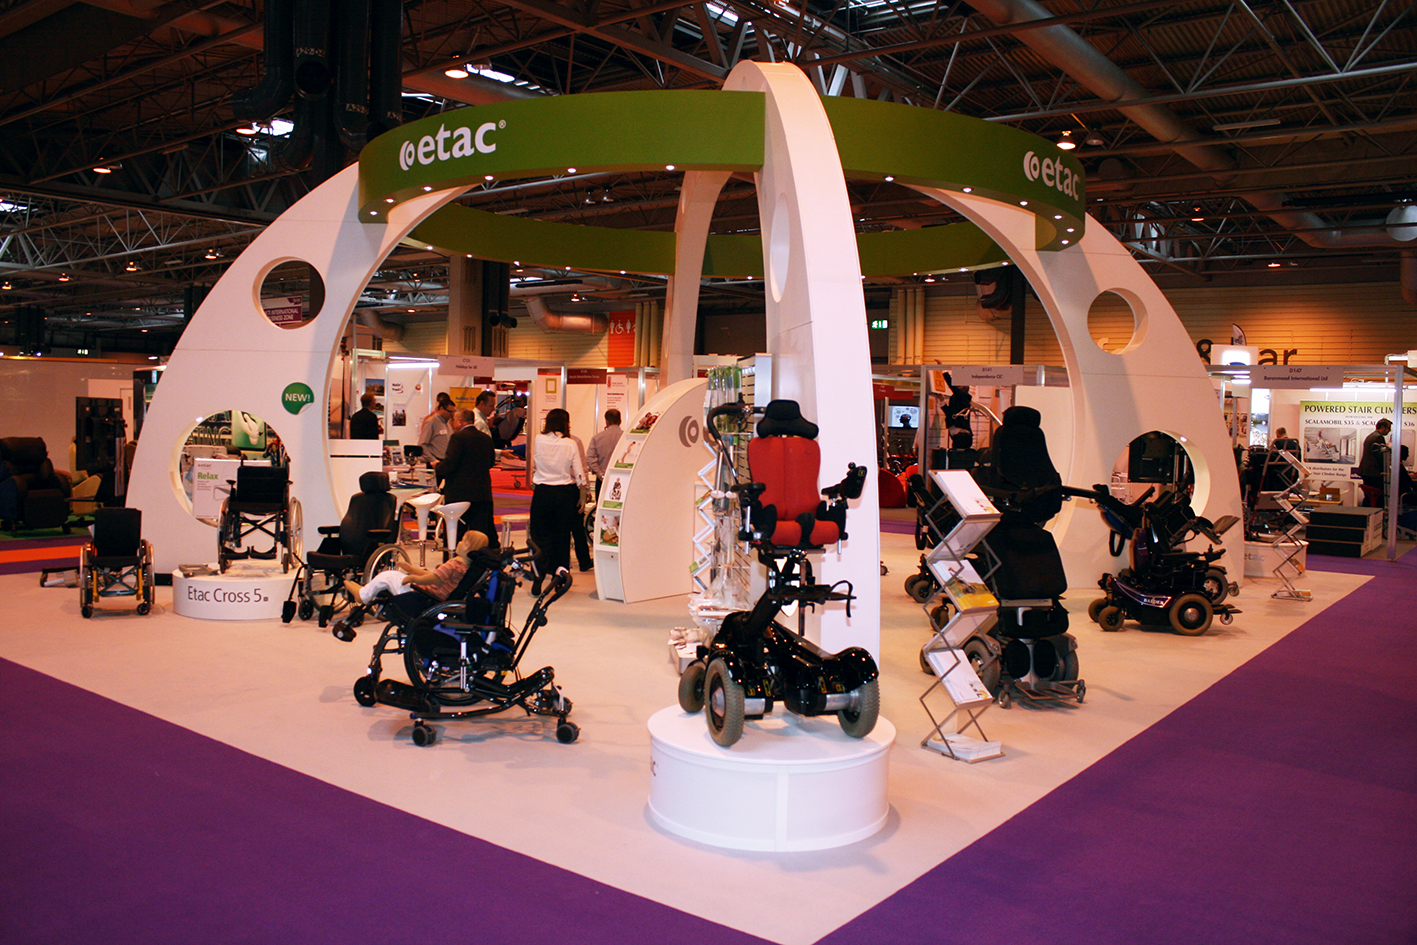 Balder Electric Wheelchairs from Etac demonstrate branding re-alignment for future product innovation